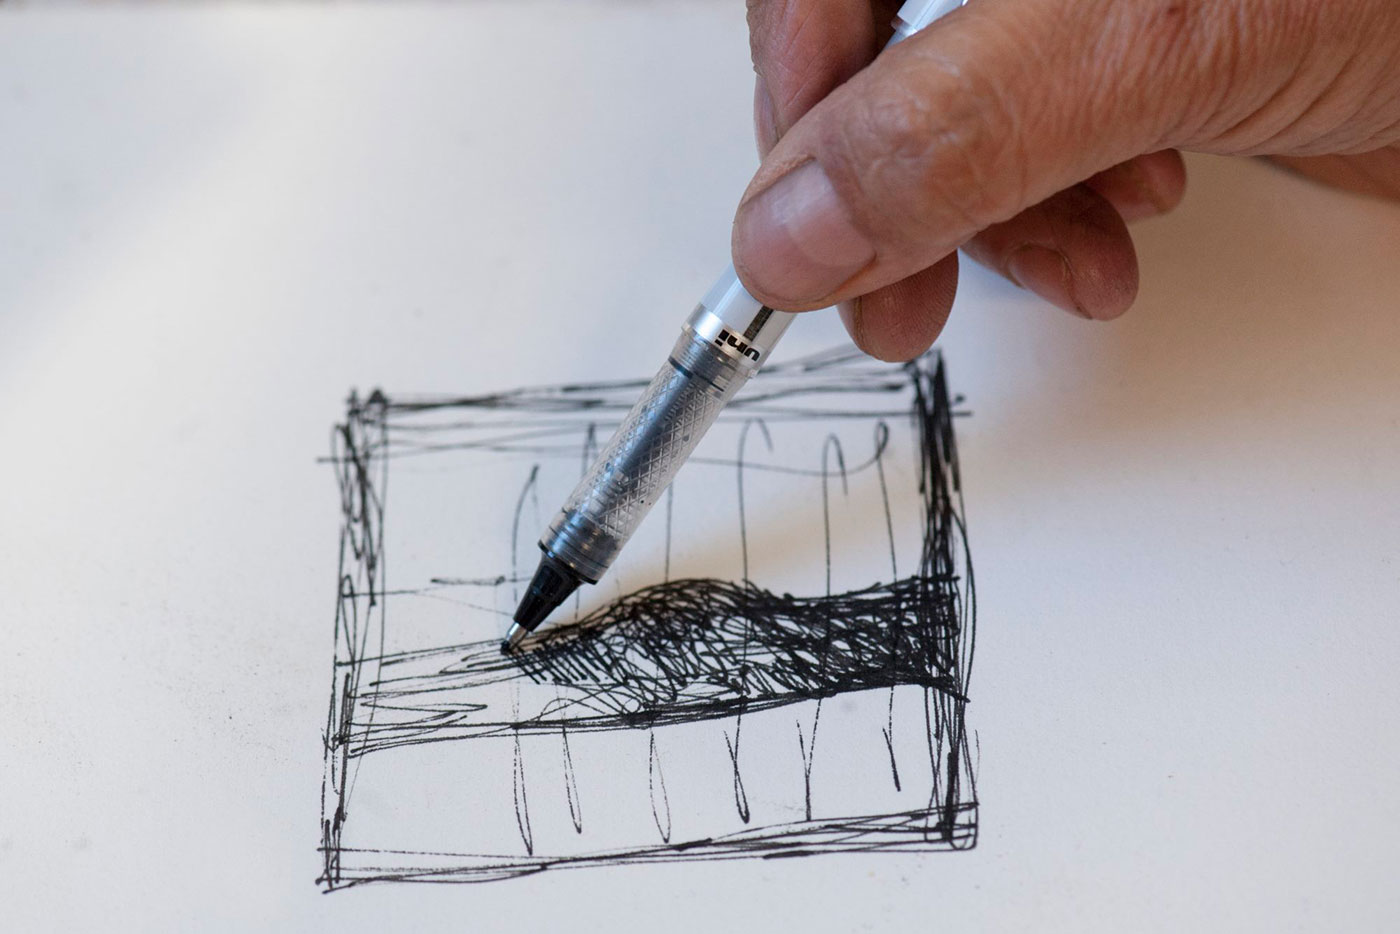 A close up on a person's hand.  The hand is holding a pen in the middle of a sketch. - click to view larger image